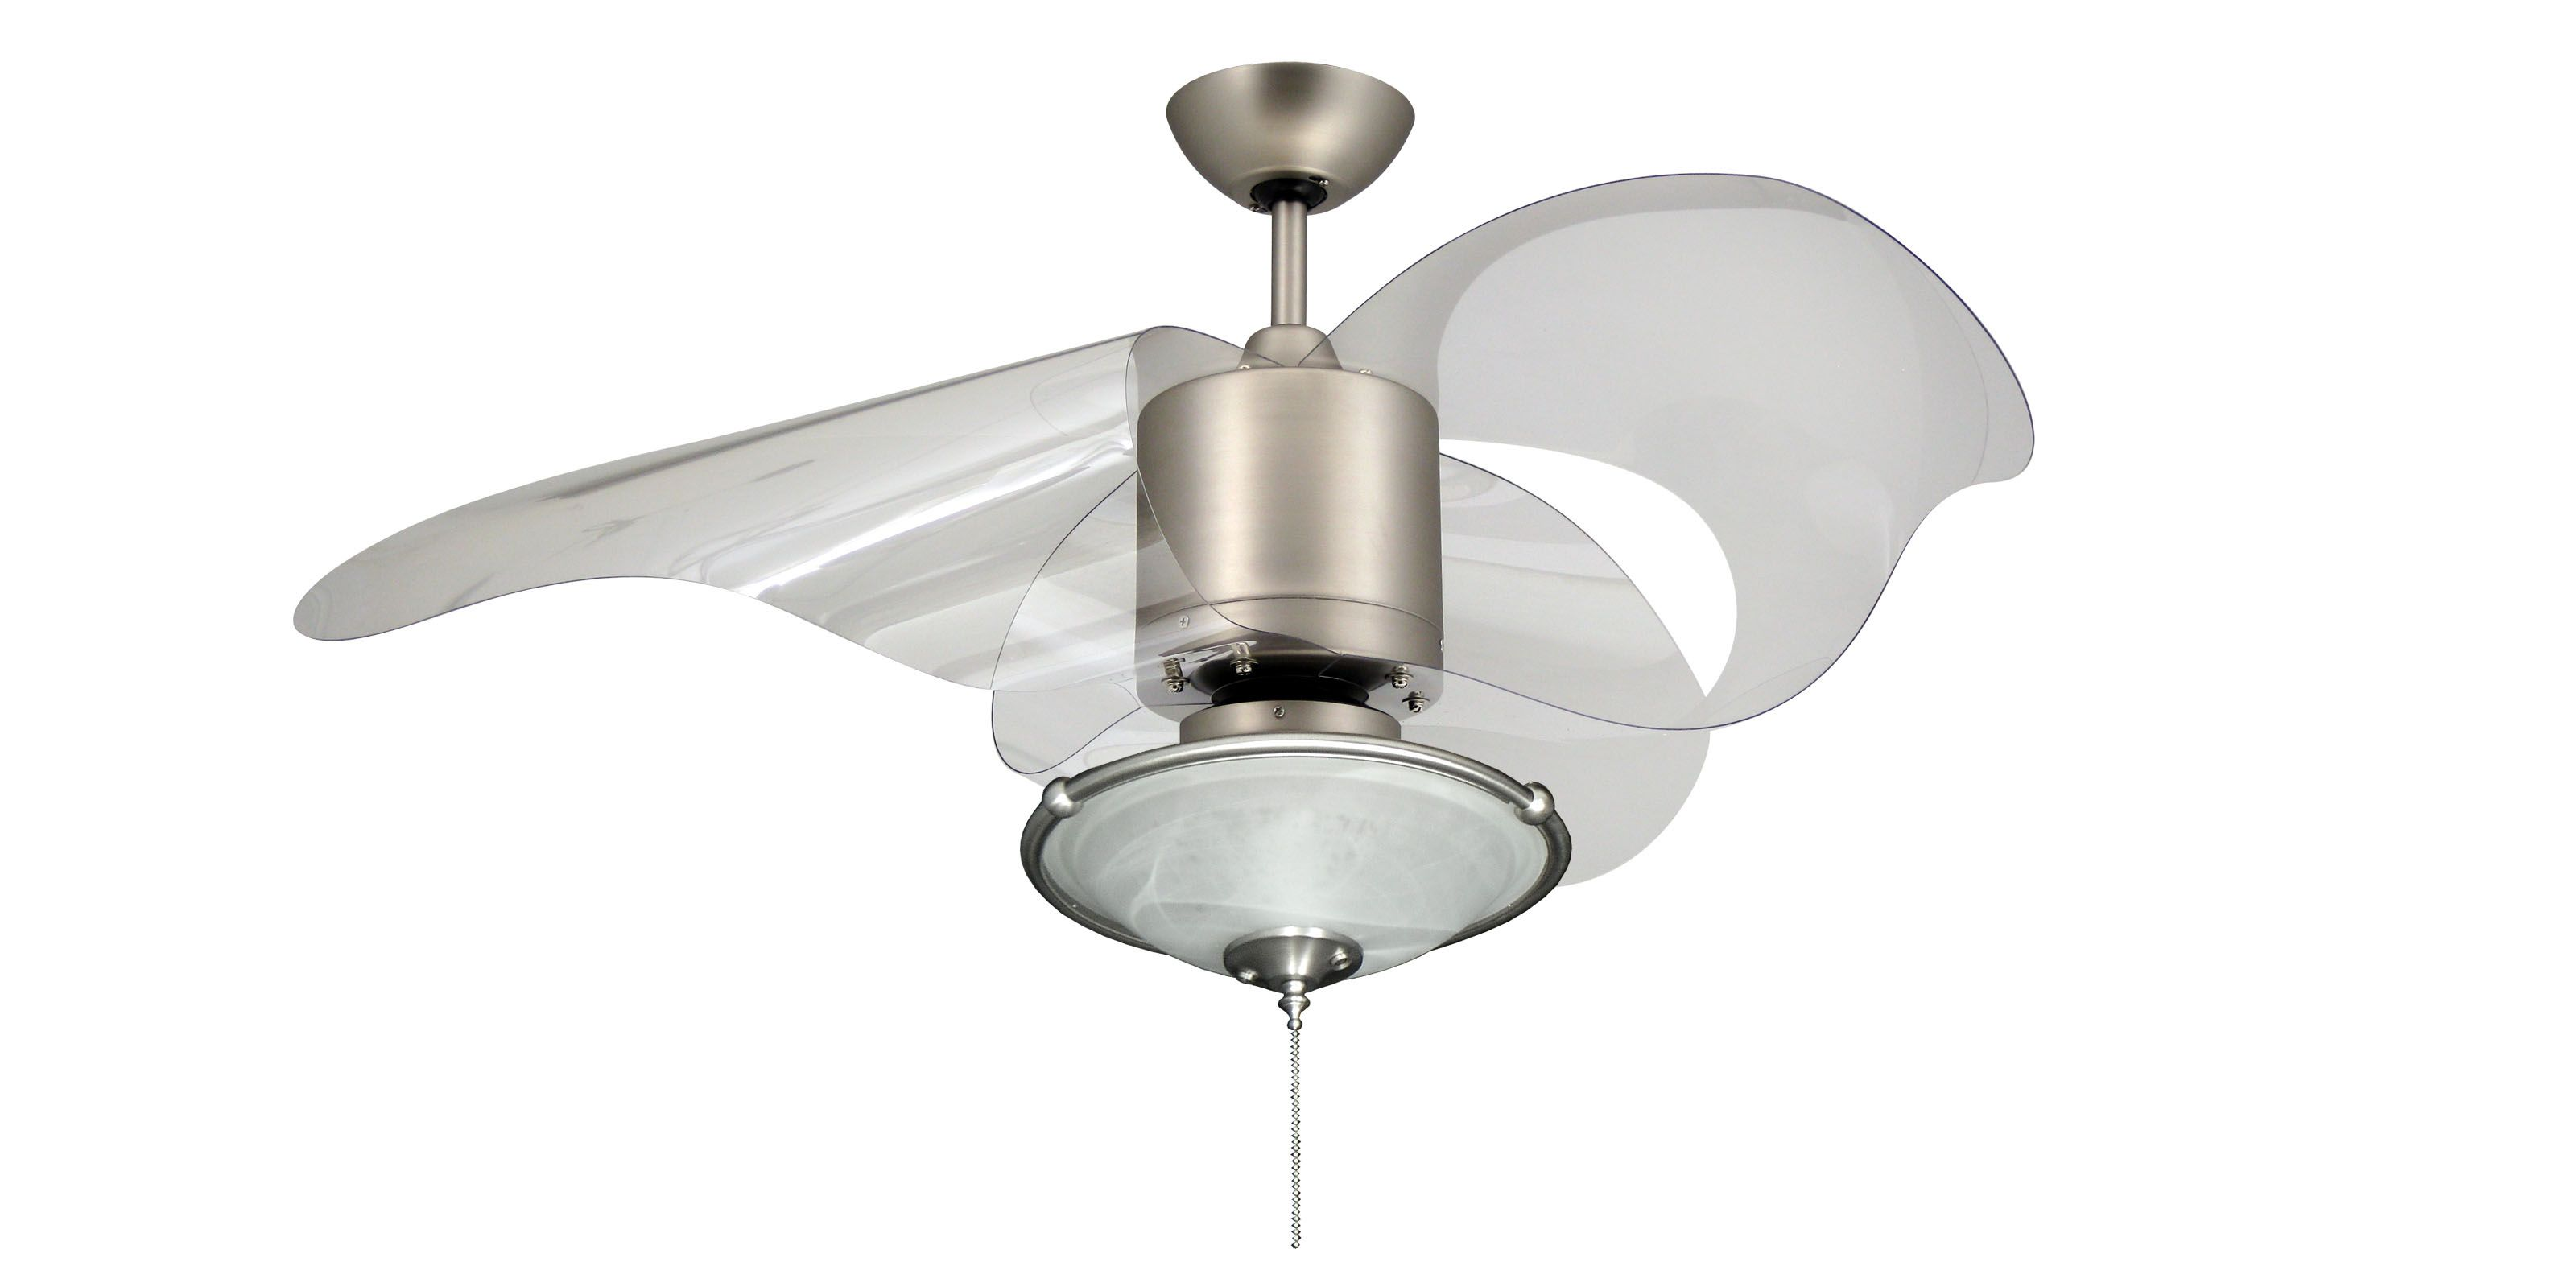 How To Use Contemporary Ceiling Fans With Lights All Year Round Designalls In 2020 Ceiling Fan With Light Ceiling Fan Unique Ceiling Fans